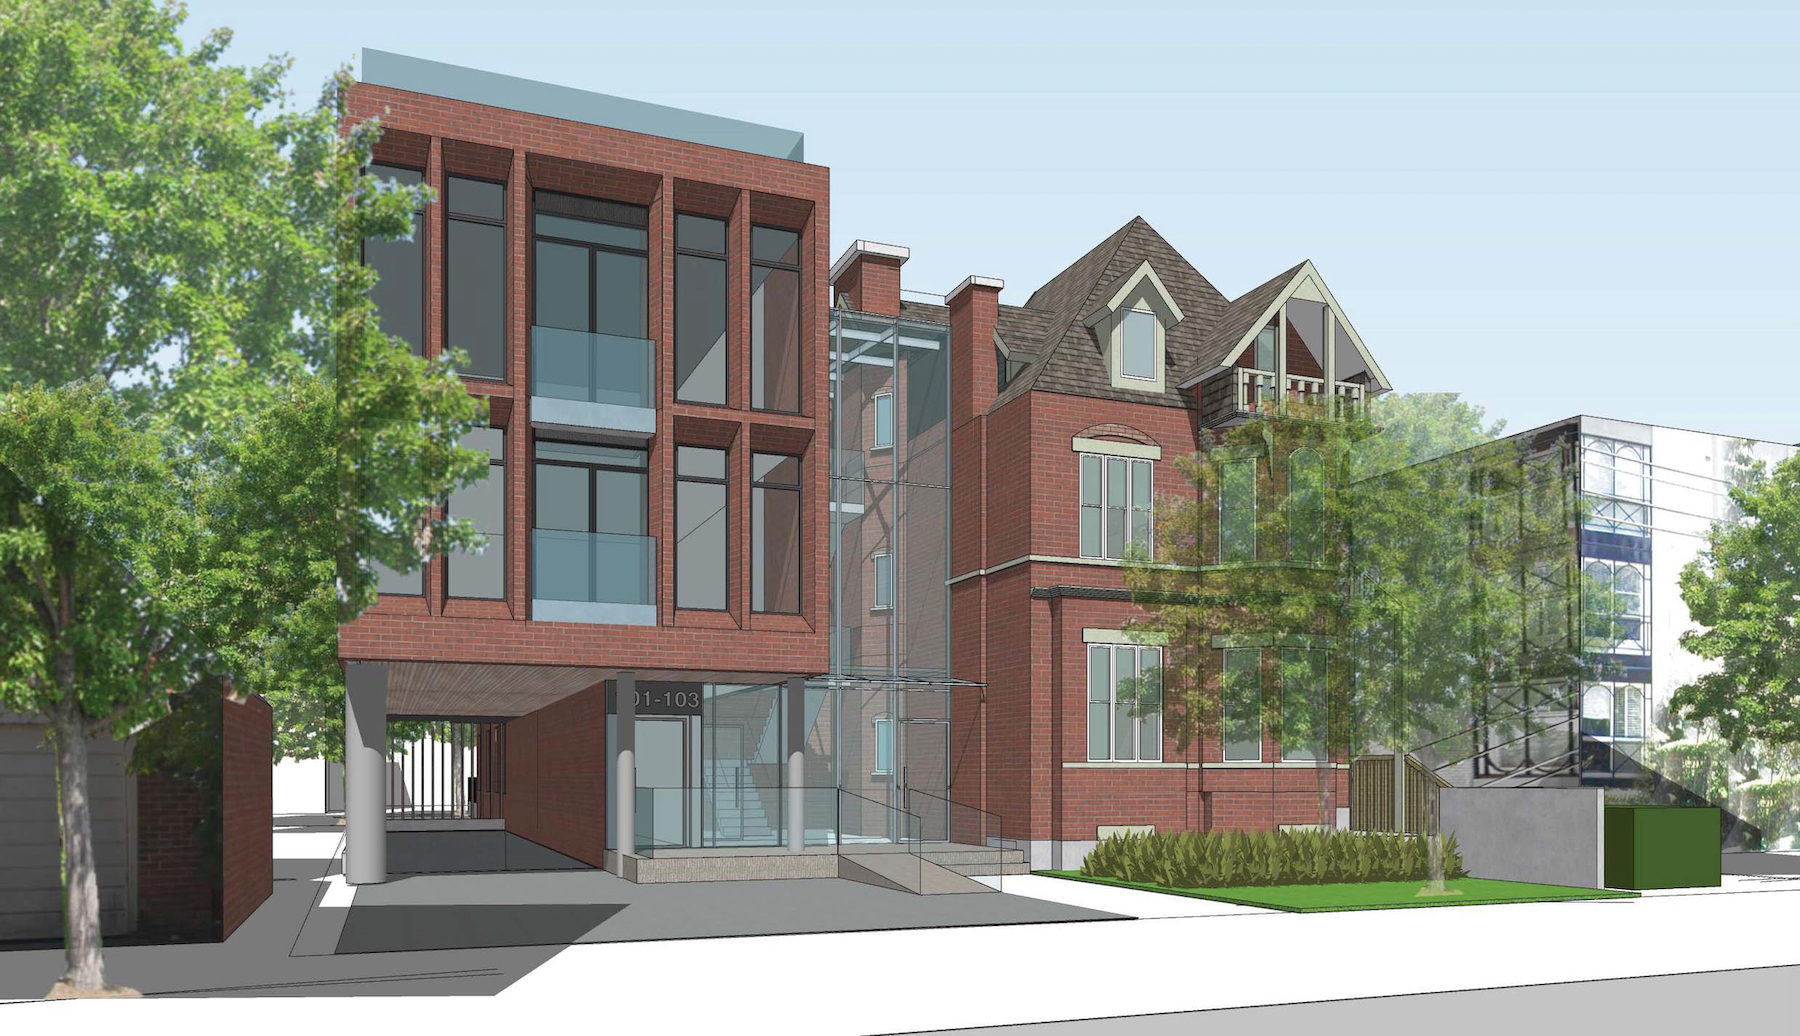 Rendering of 101 Heath Street Condos front-facing side building exterior.